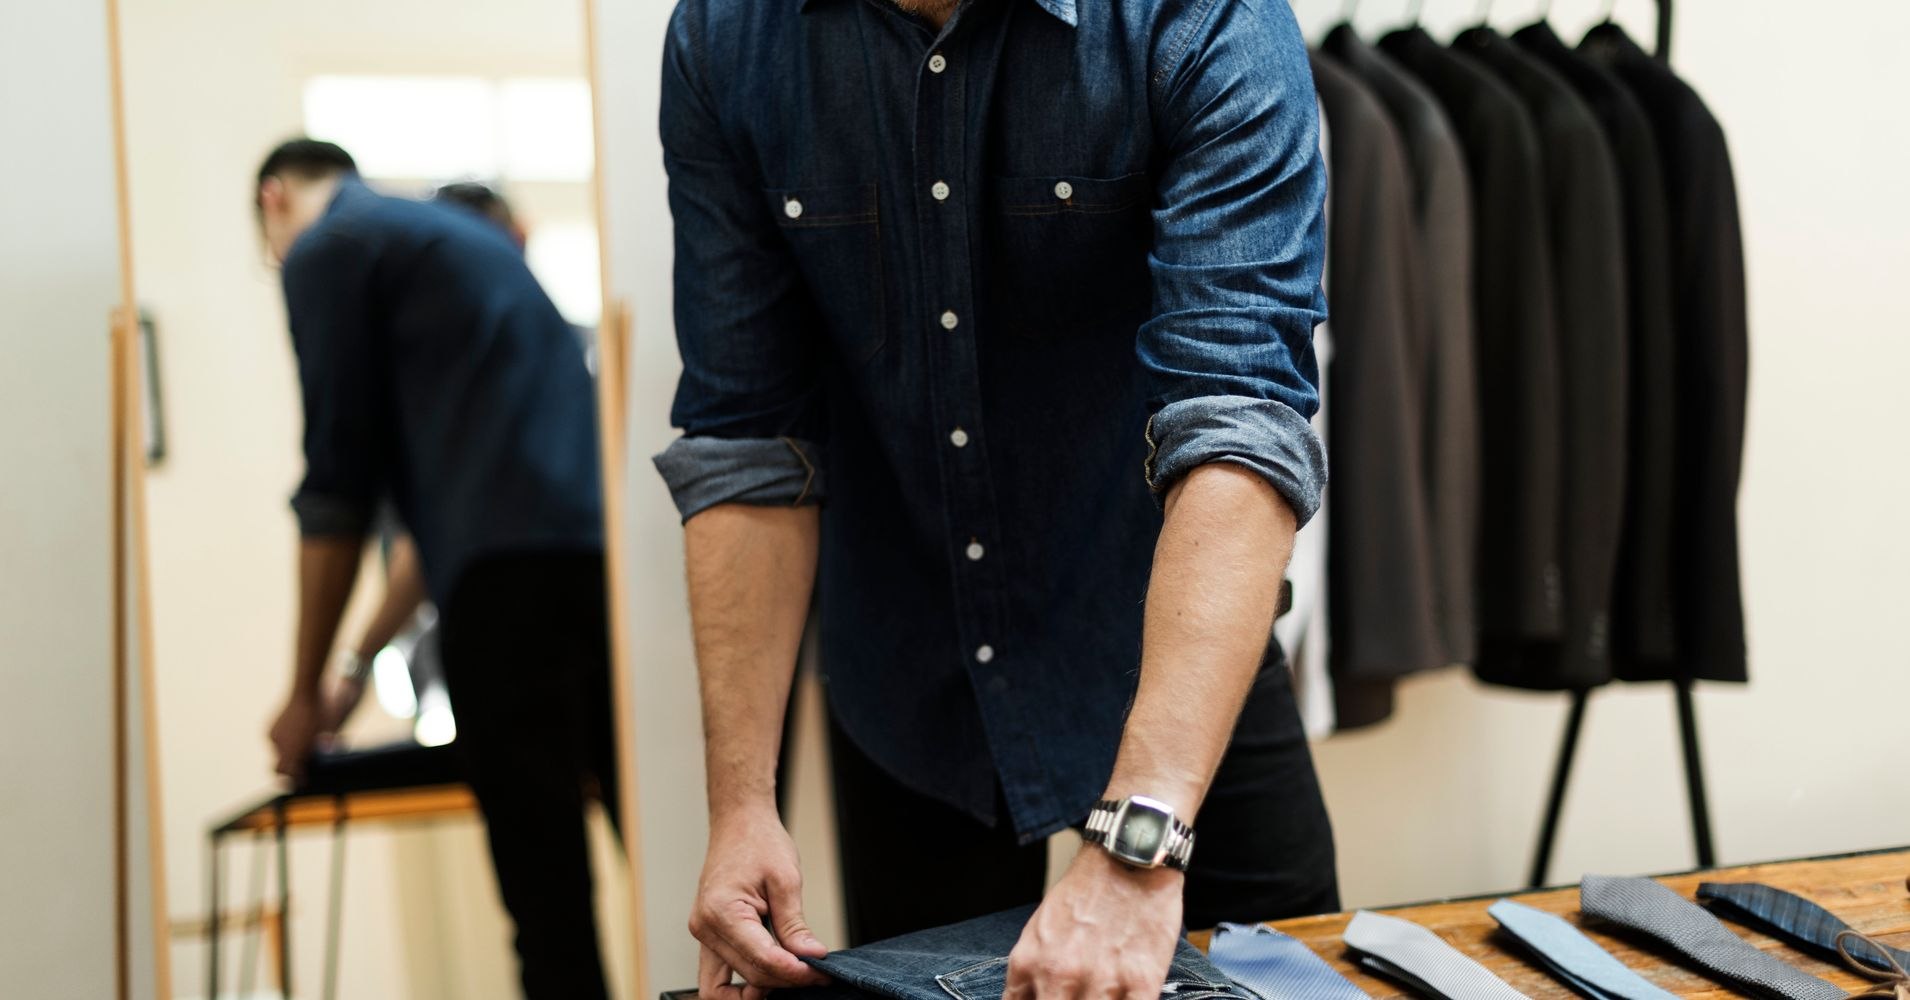 10 Ethical Clothing Brands For Men That Are Worth Checking